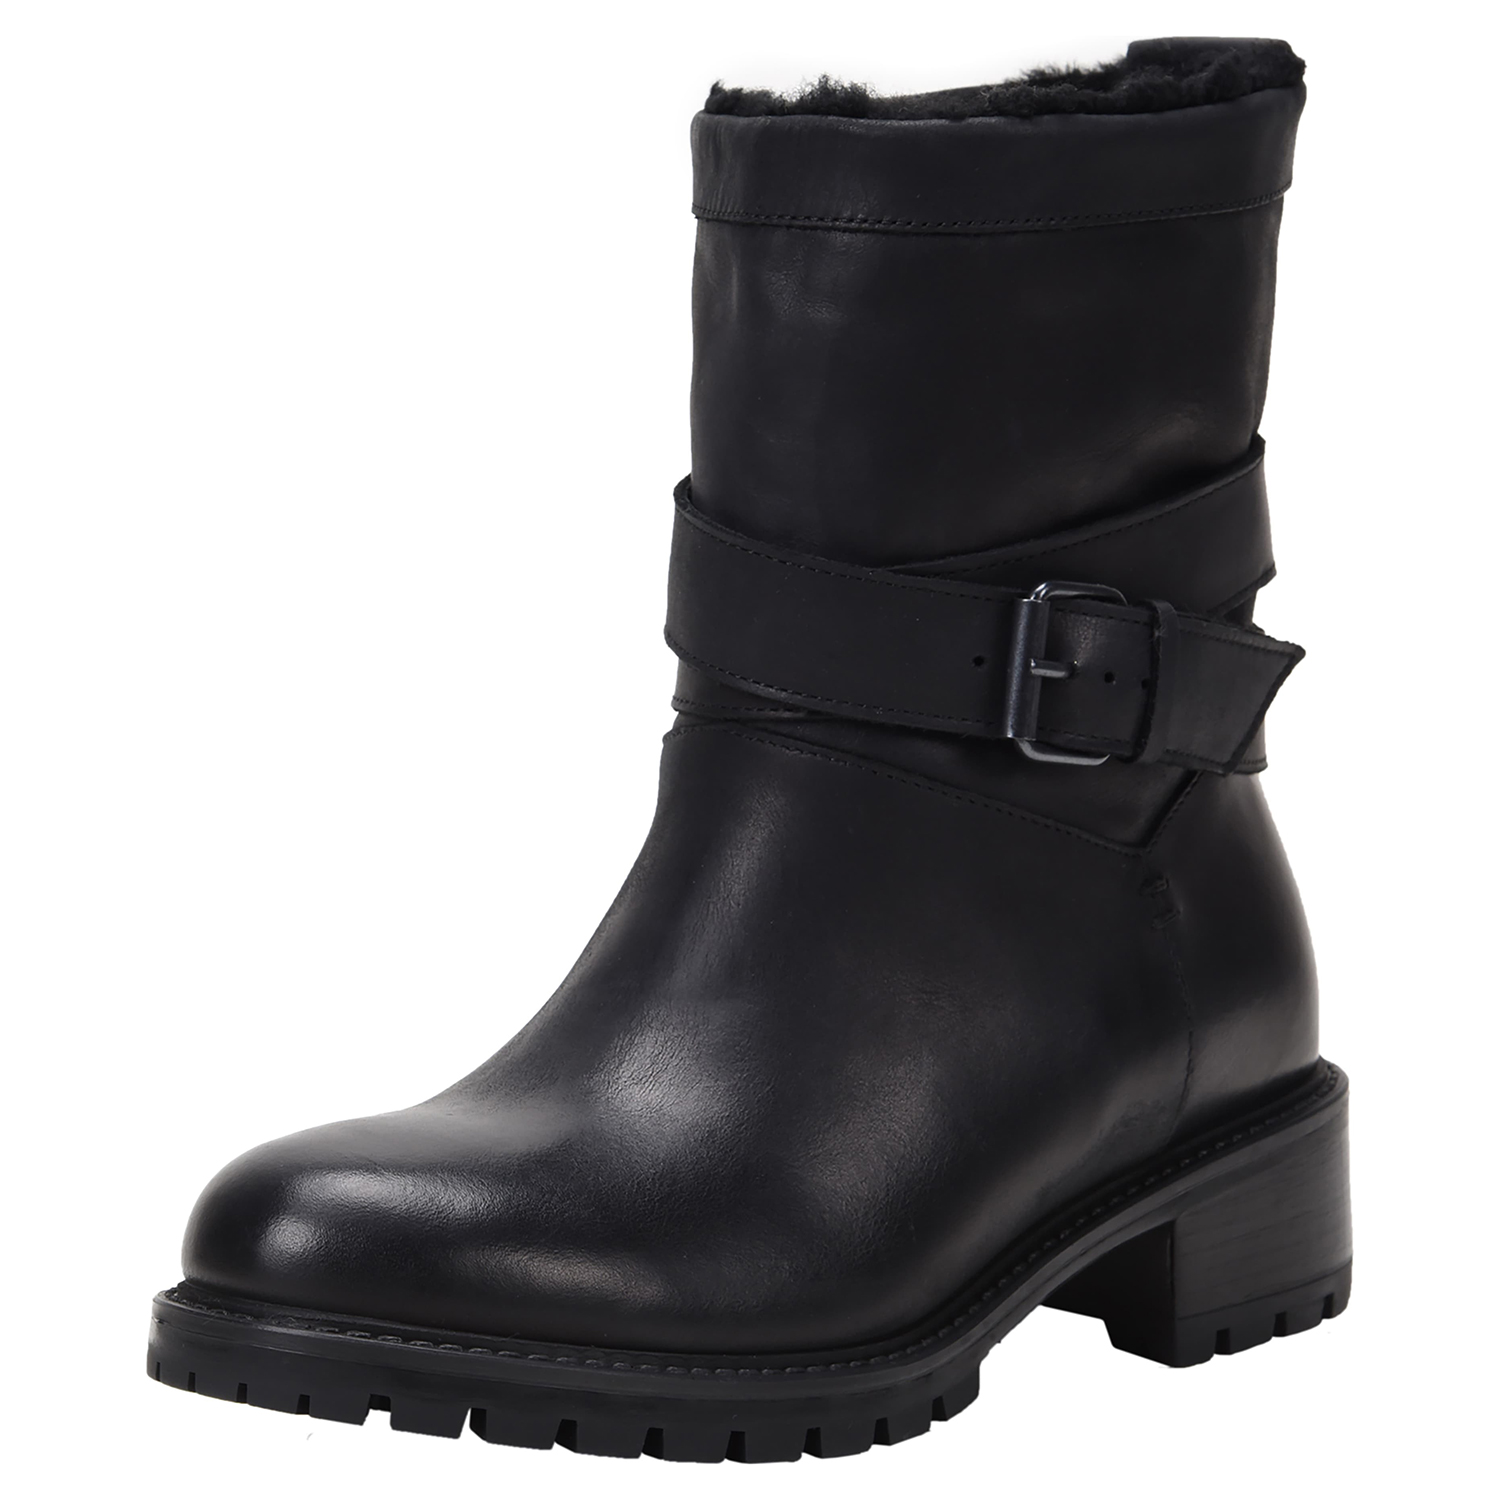 Best Stylish Option: Ross & Snow Women's Genuine Shearling Lined Moto Boots